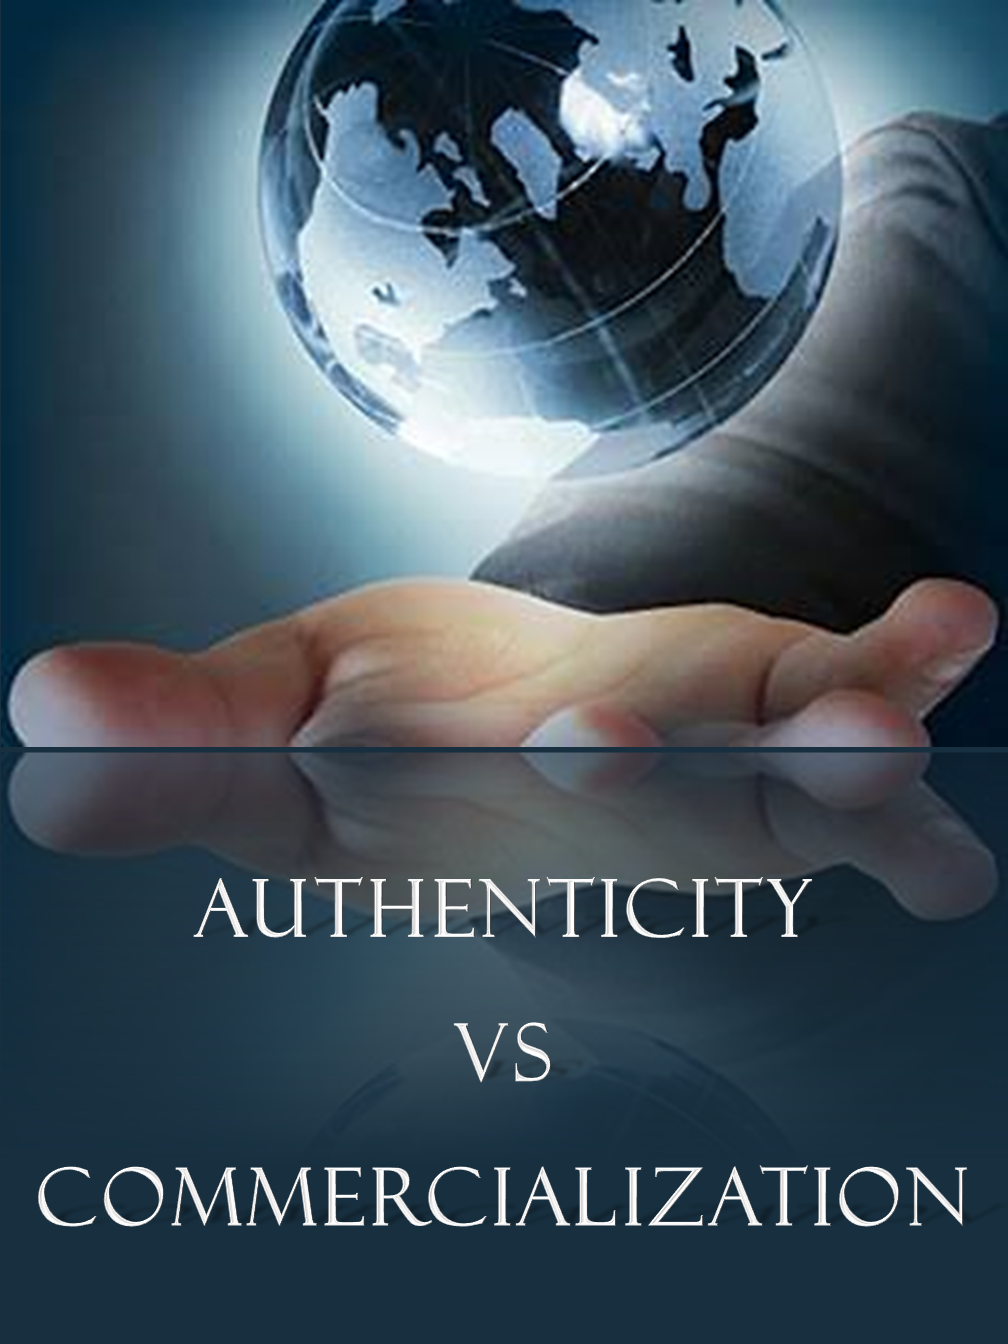 Authenticity vs Commercialization